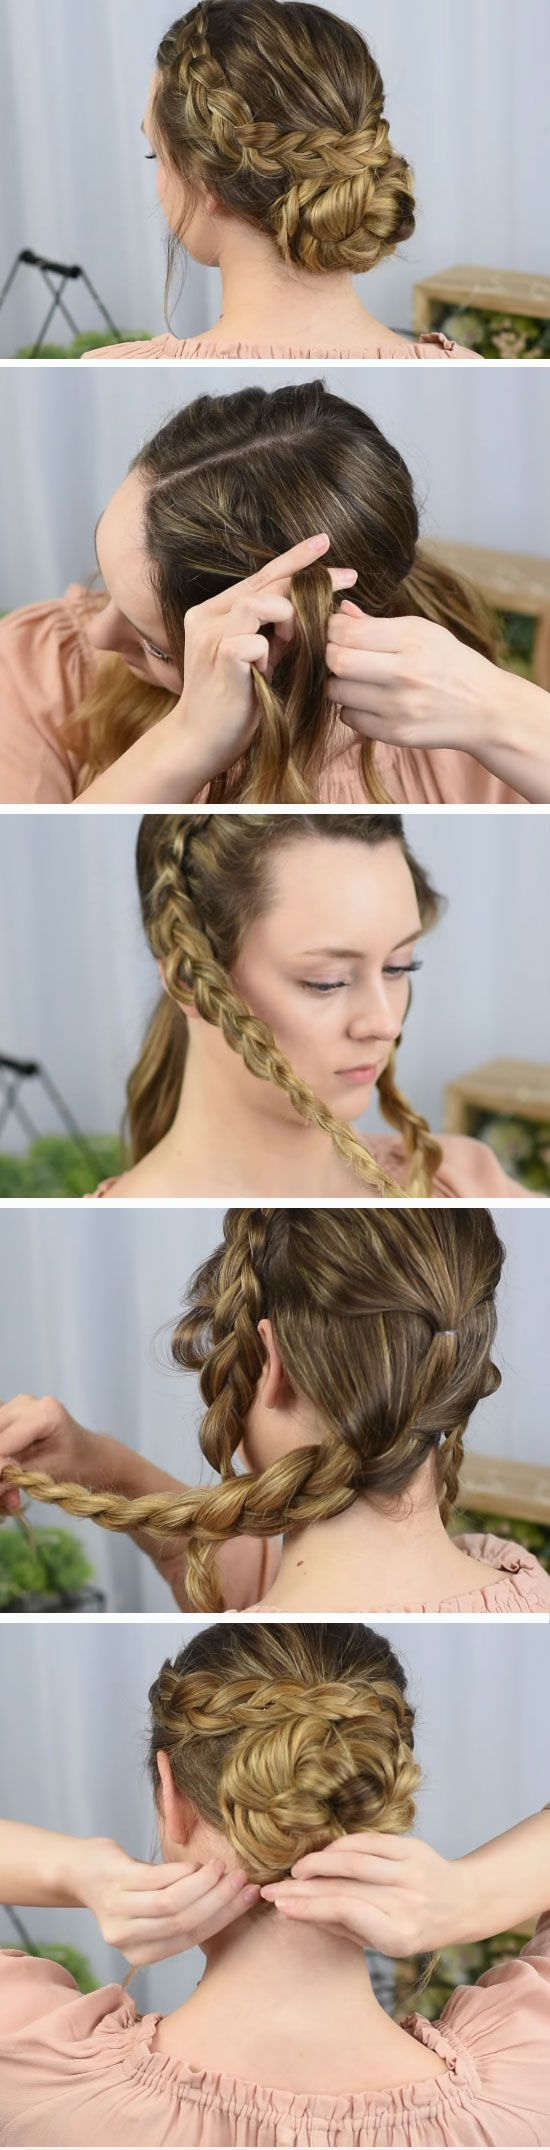 17917 Best Hairstyles For Long Hair Images On Pinterest | Hairdos, Hair Dos  And Long Hair